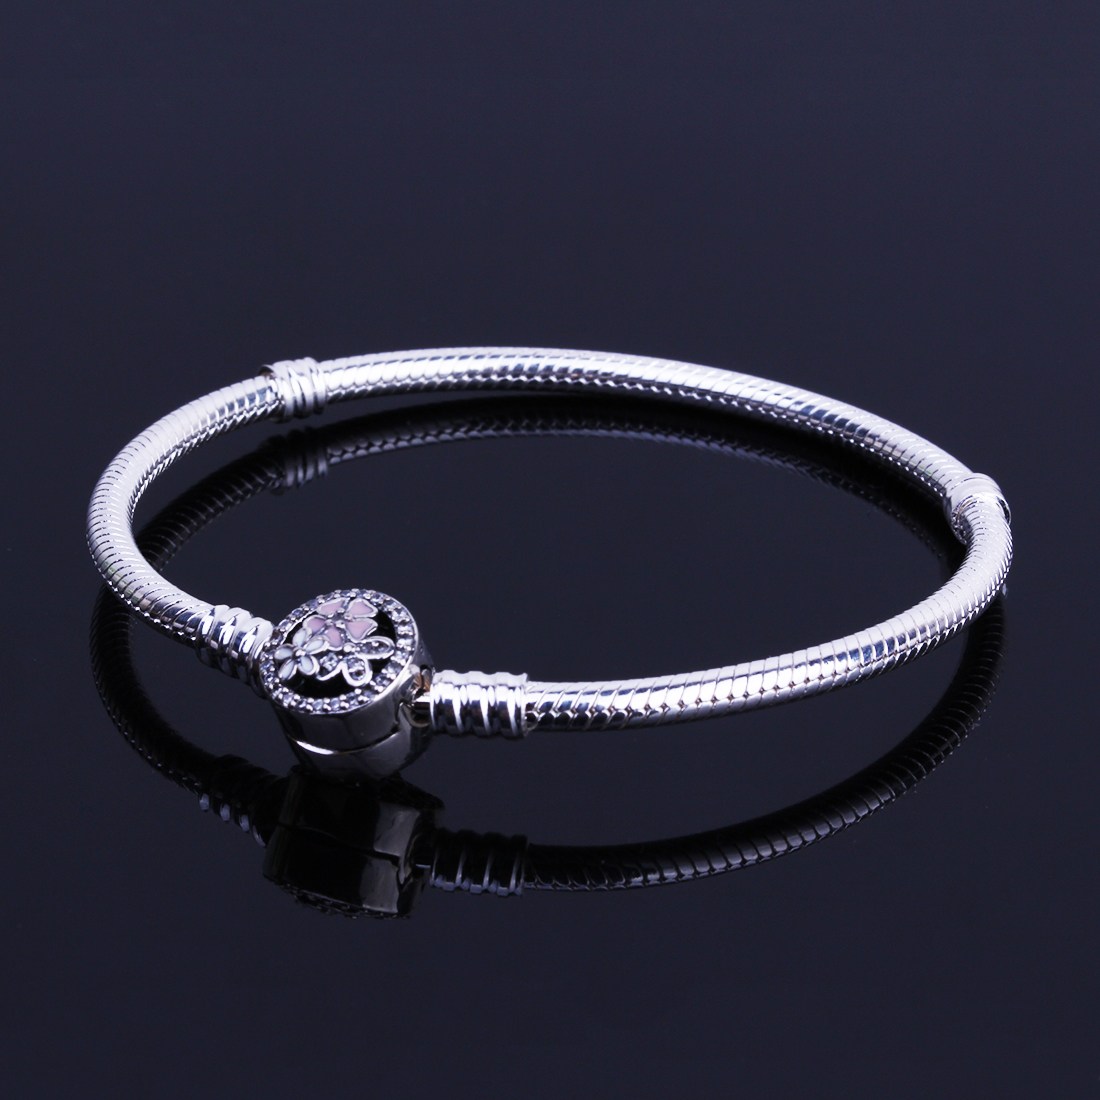 Authentic 925 Sterling Silver Poetic Blooms Clasp Bracelets Basic Snake Chain Fit European Charms Bracelets DIY Women Jewelry